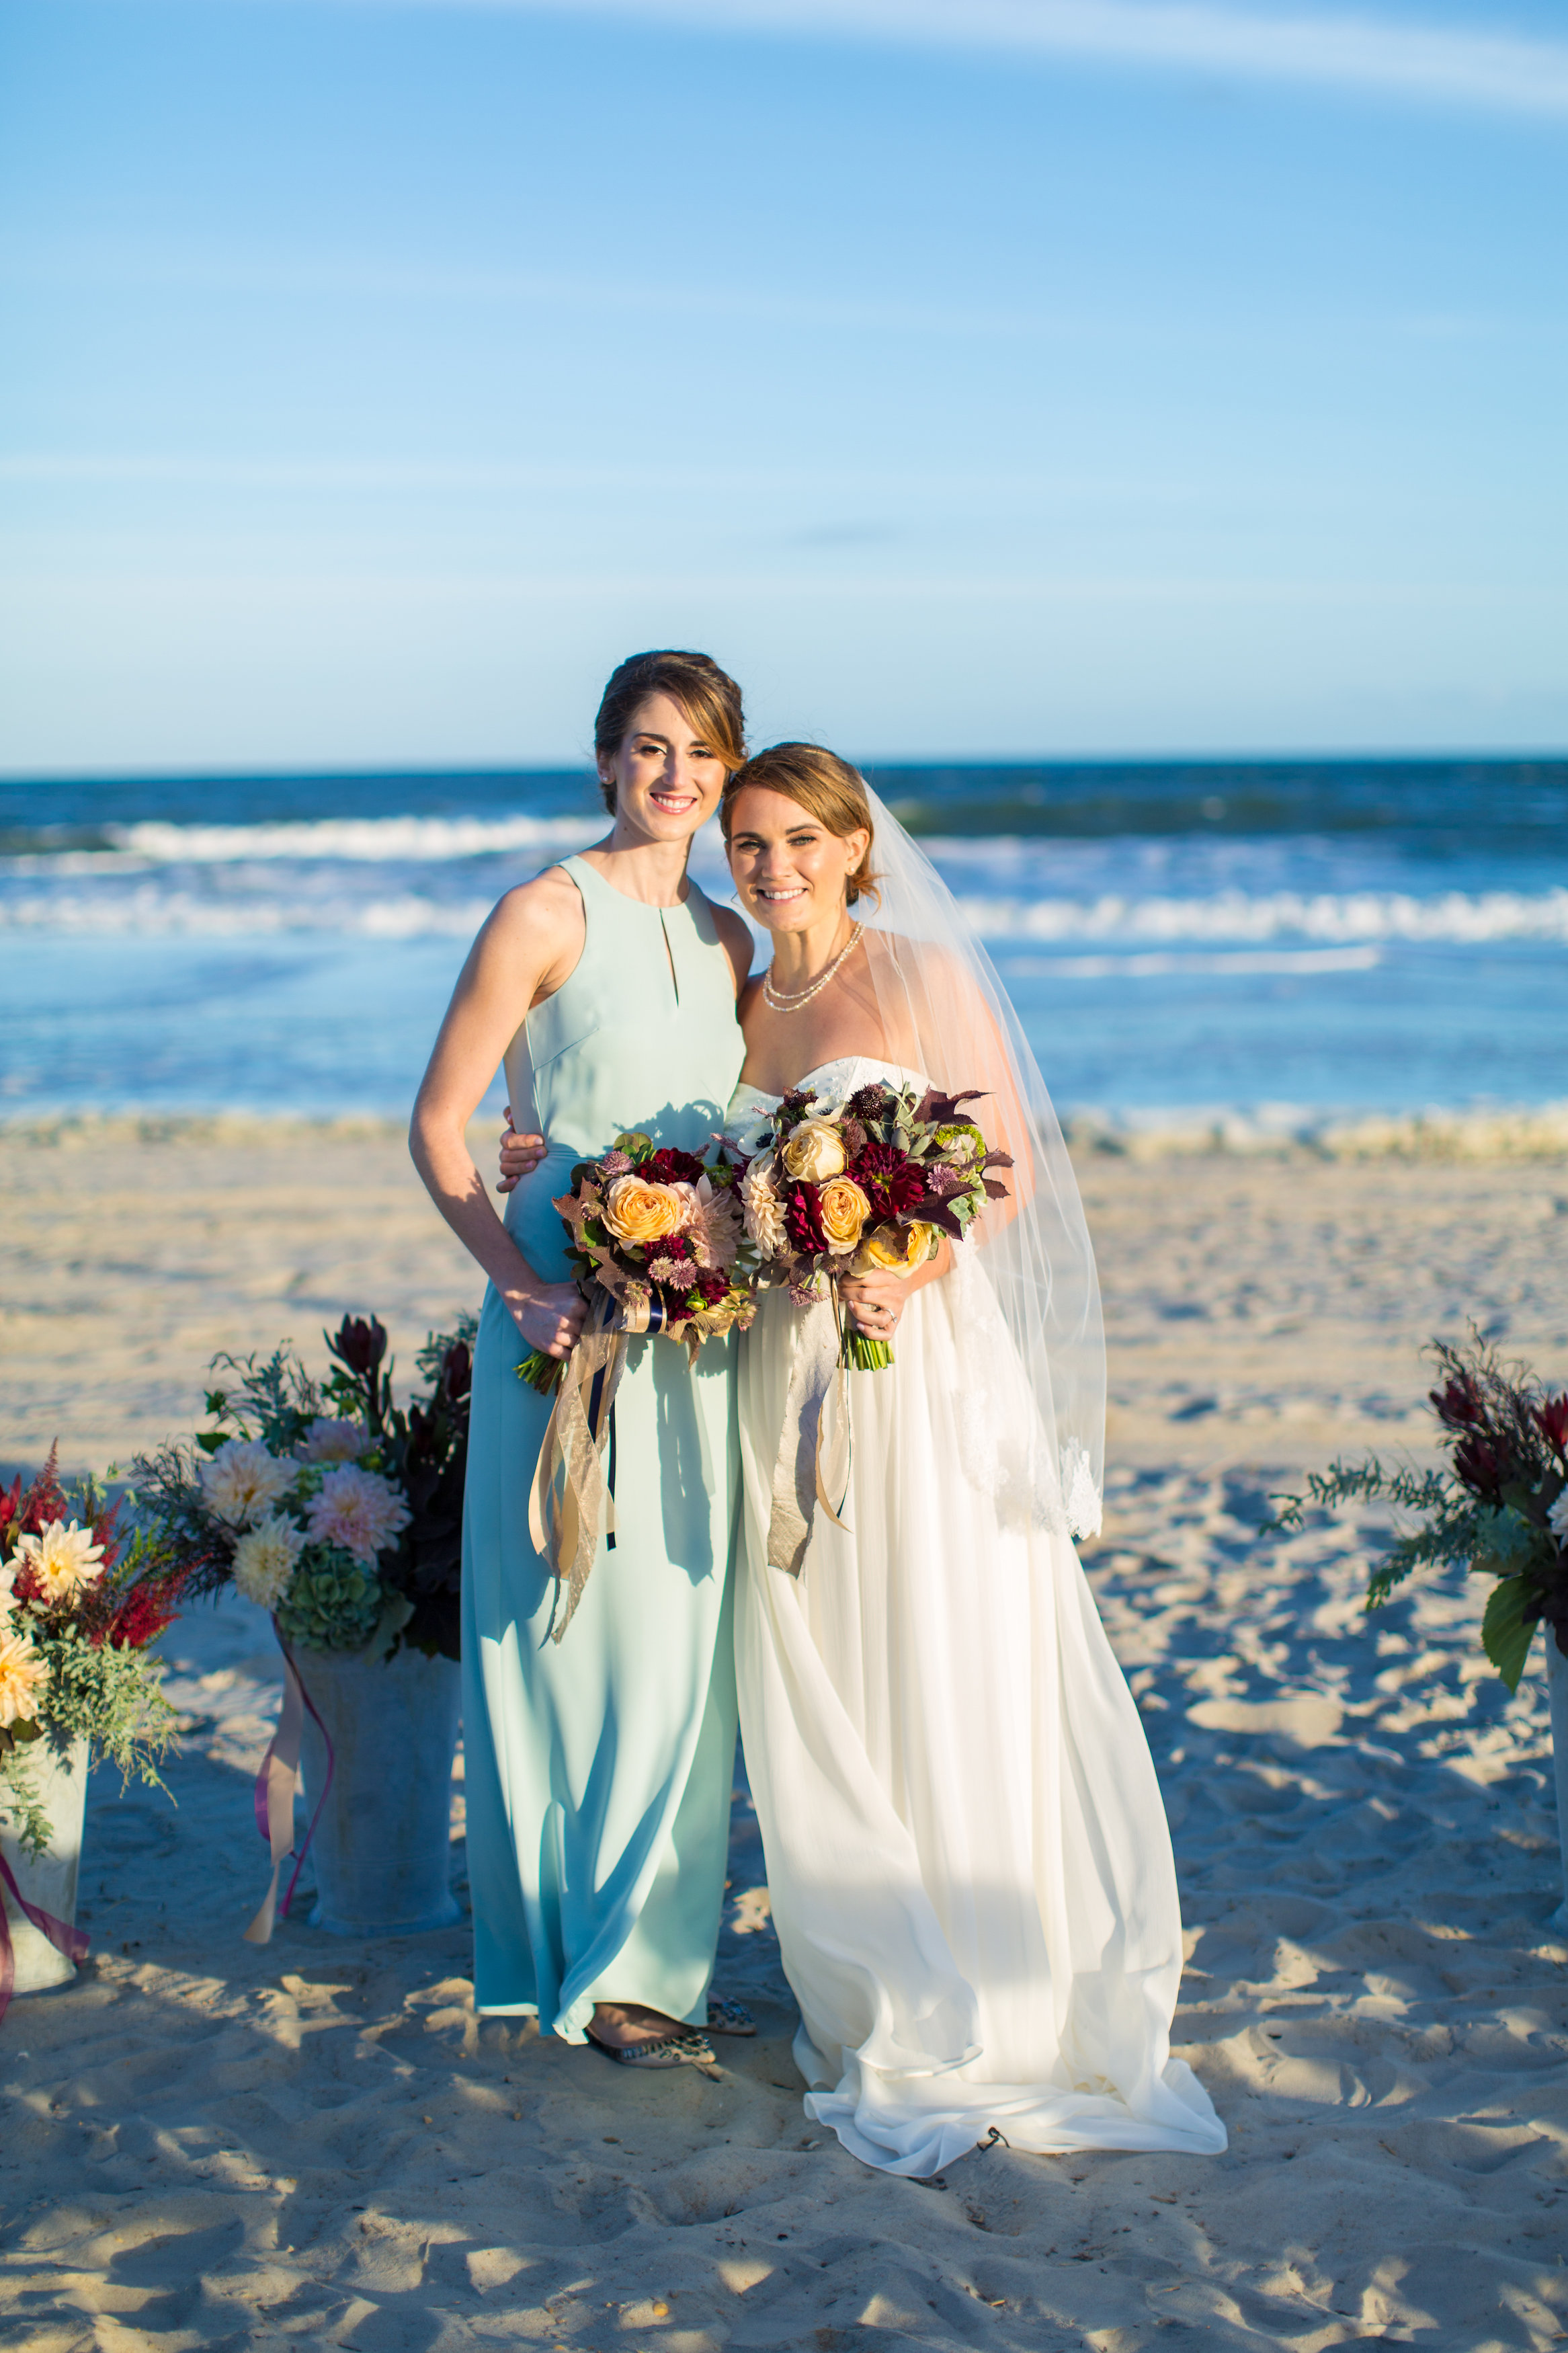 Jenna's bridesmaid carried a similar bouquet to her own, which contrasted perfectly with the light teal shade of her dress.